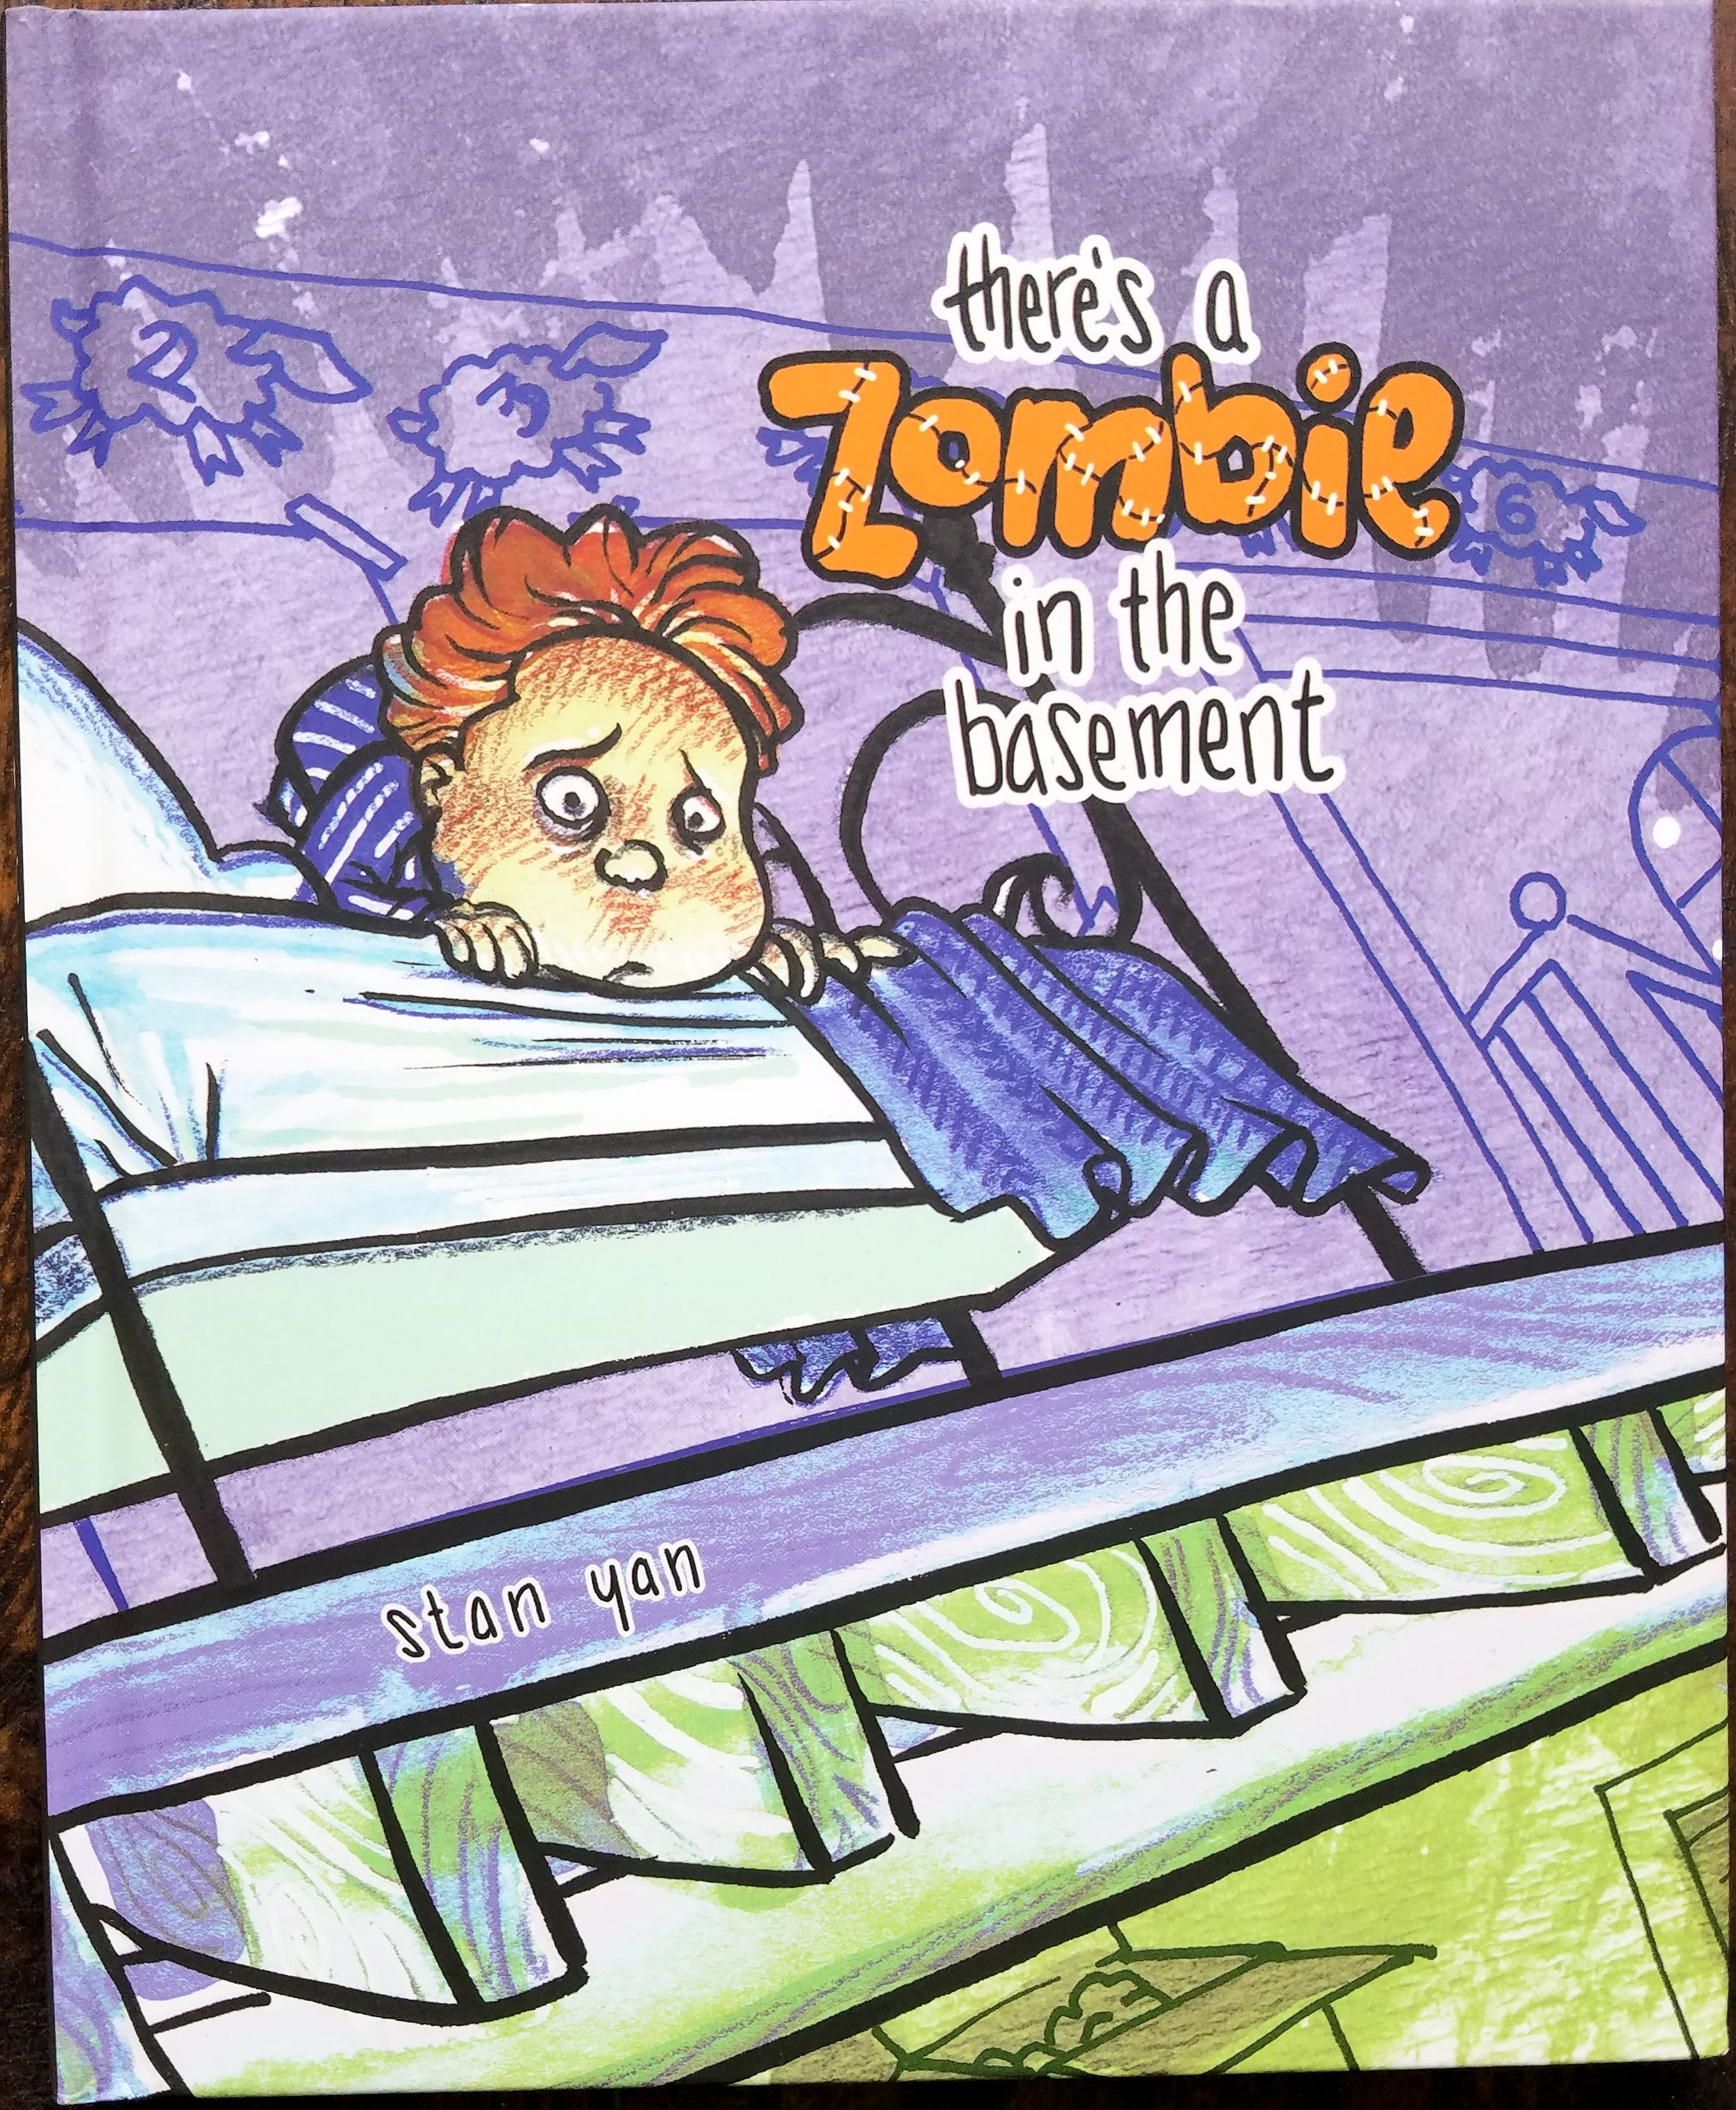 There's A Zombie in the Basement  - a story book by  Stan Yan .